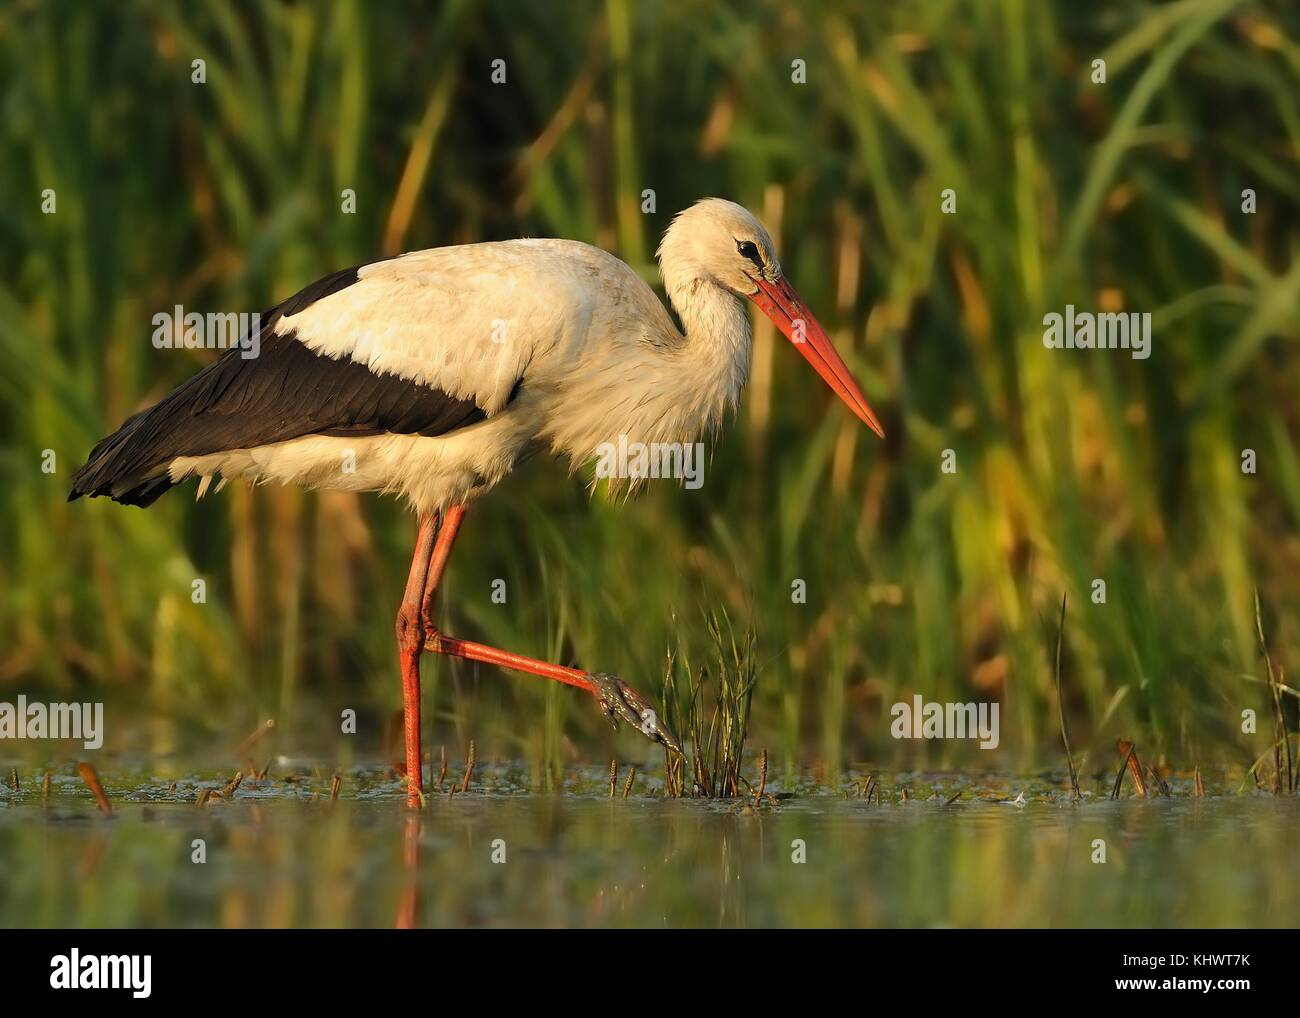 White Stork - Ciconia ciconia staying and waiting for the prey in the water - Stock Image